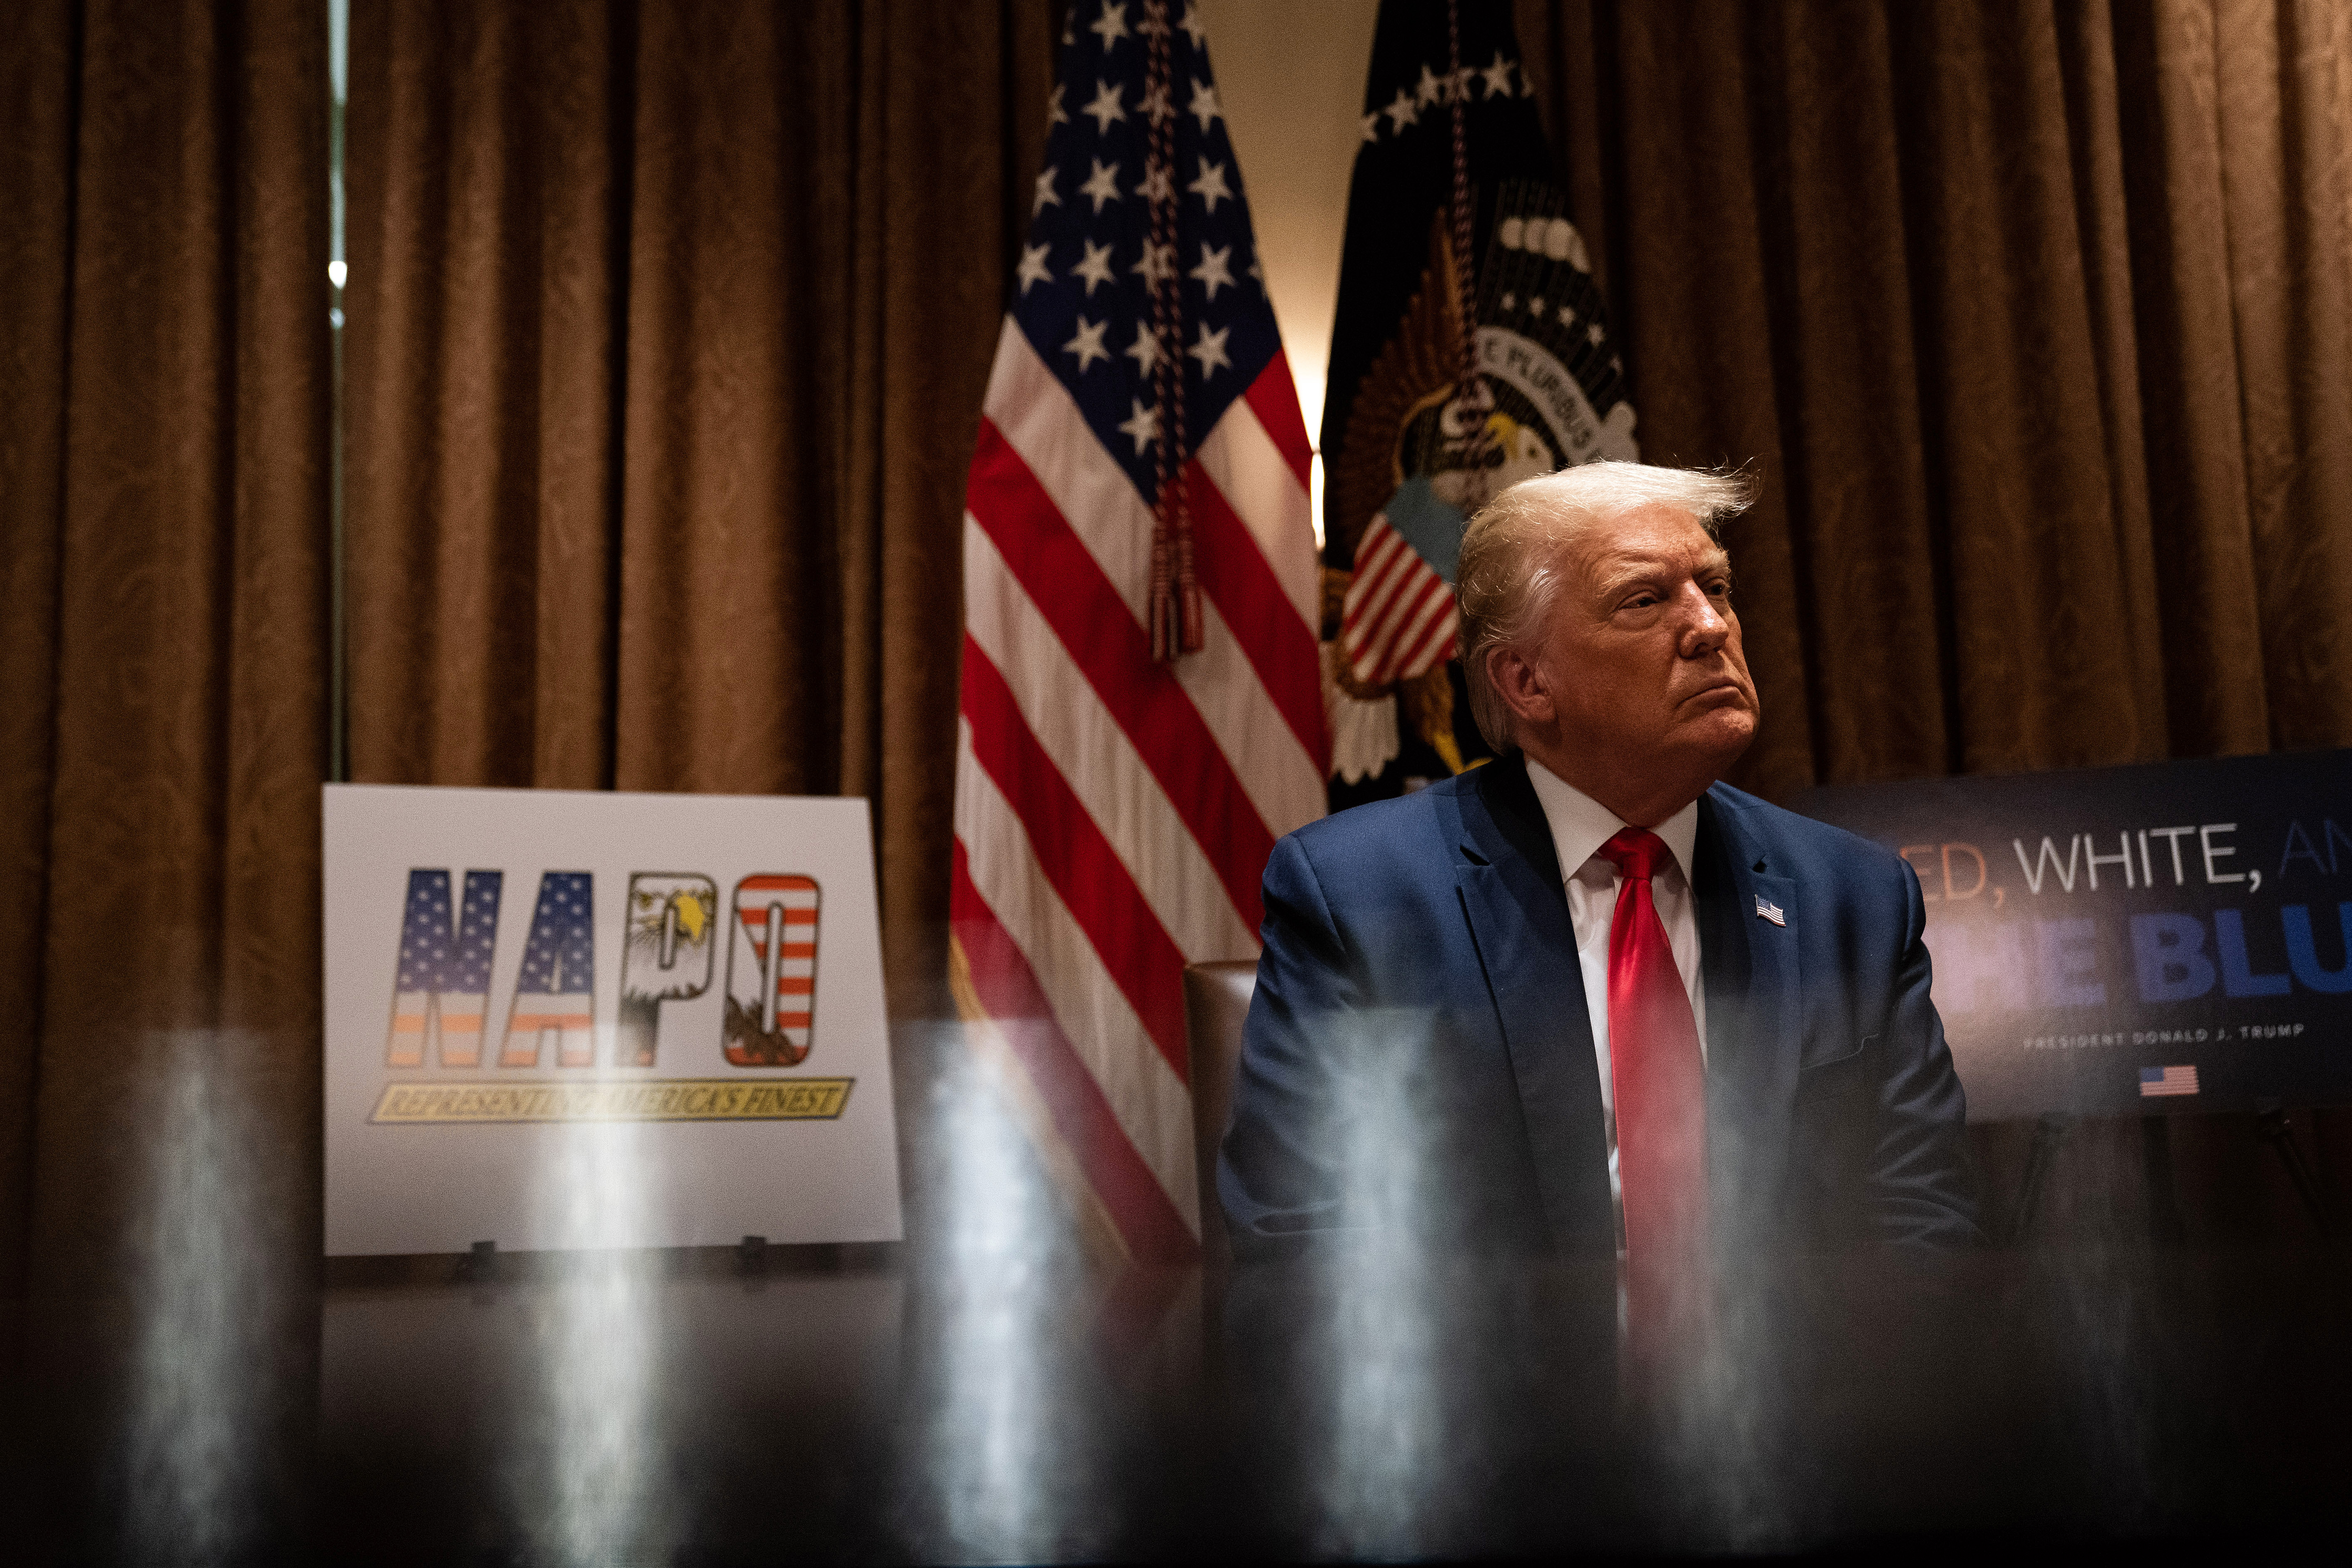 WASHINGTON, DC - JULY 31: U.S. President Donald Trump listens during a meeting with members of the National Association of Police Organizations Leadership in the Cabinet Room of the White House July 31, 2020 in Washington, DC. (Photo by Anna Moneymaker-Pool/Getty Images)